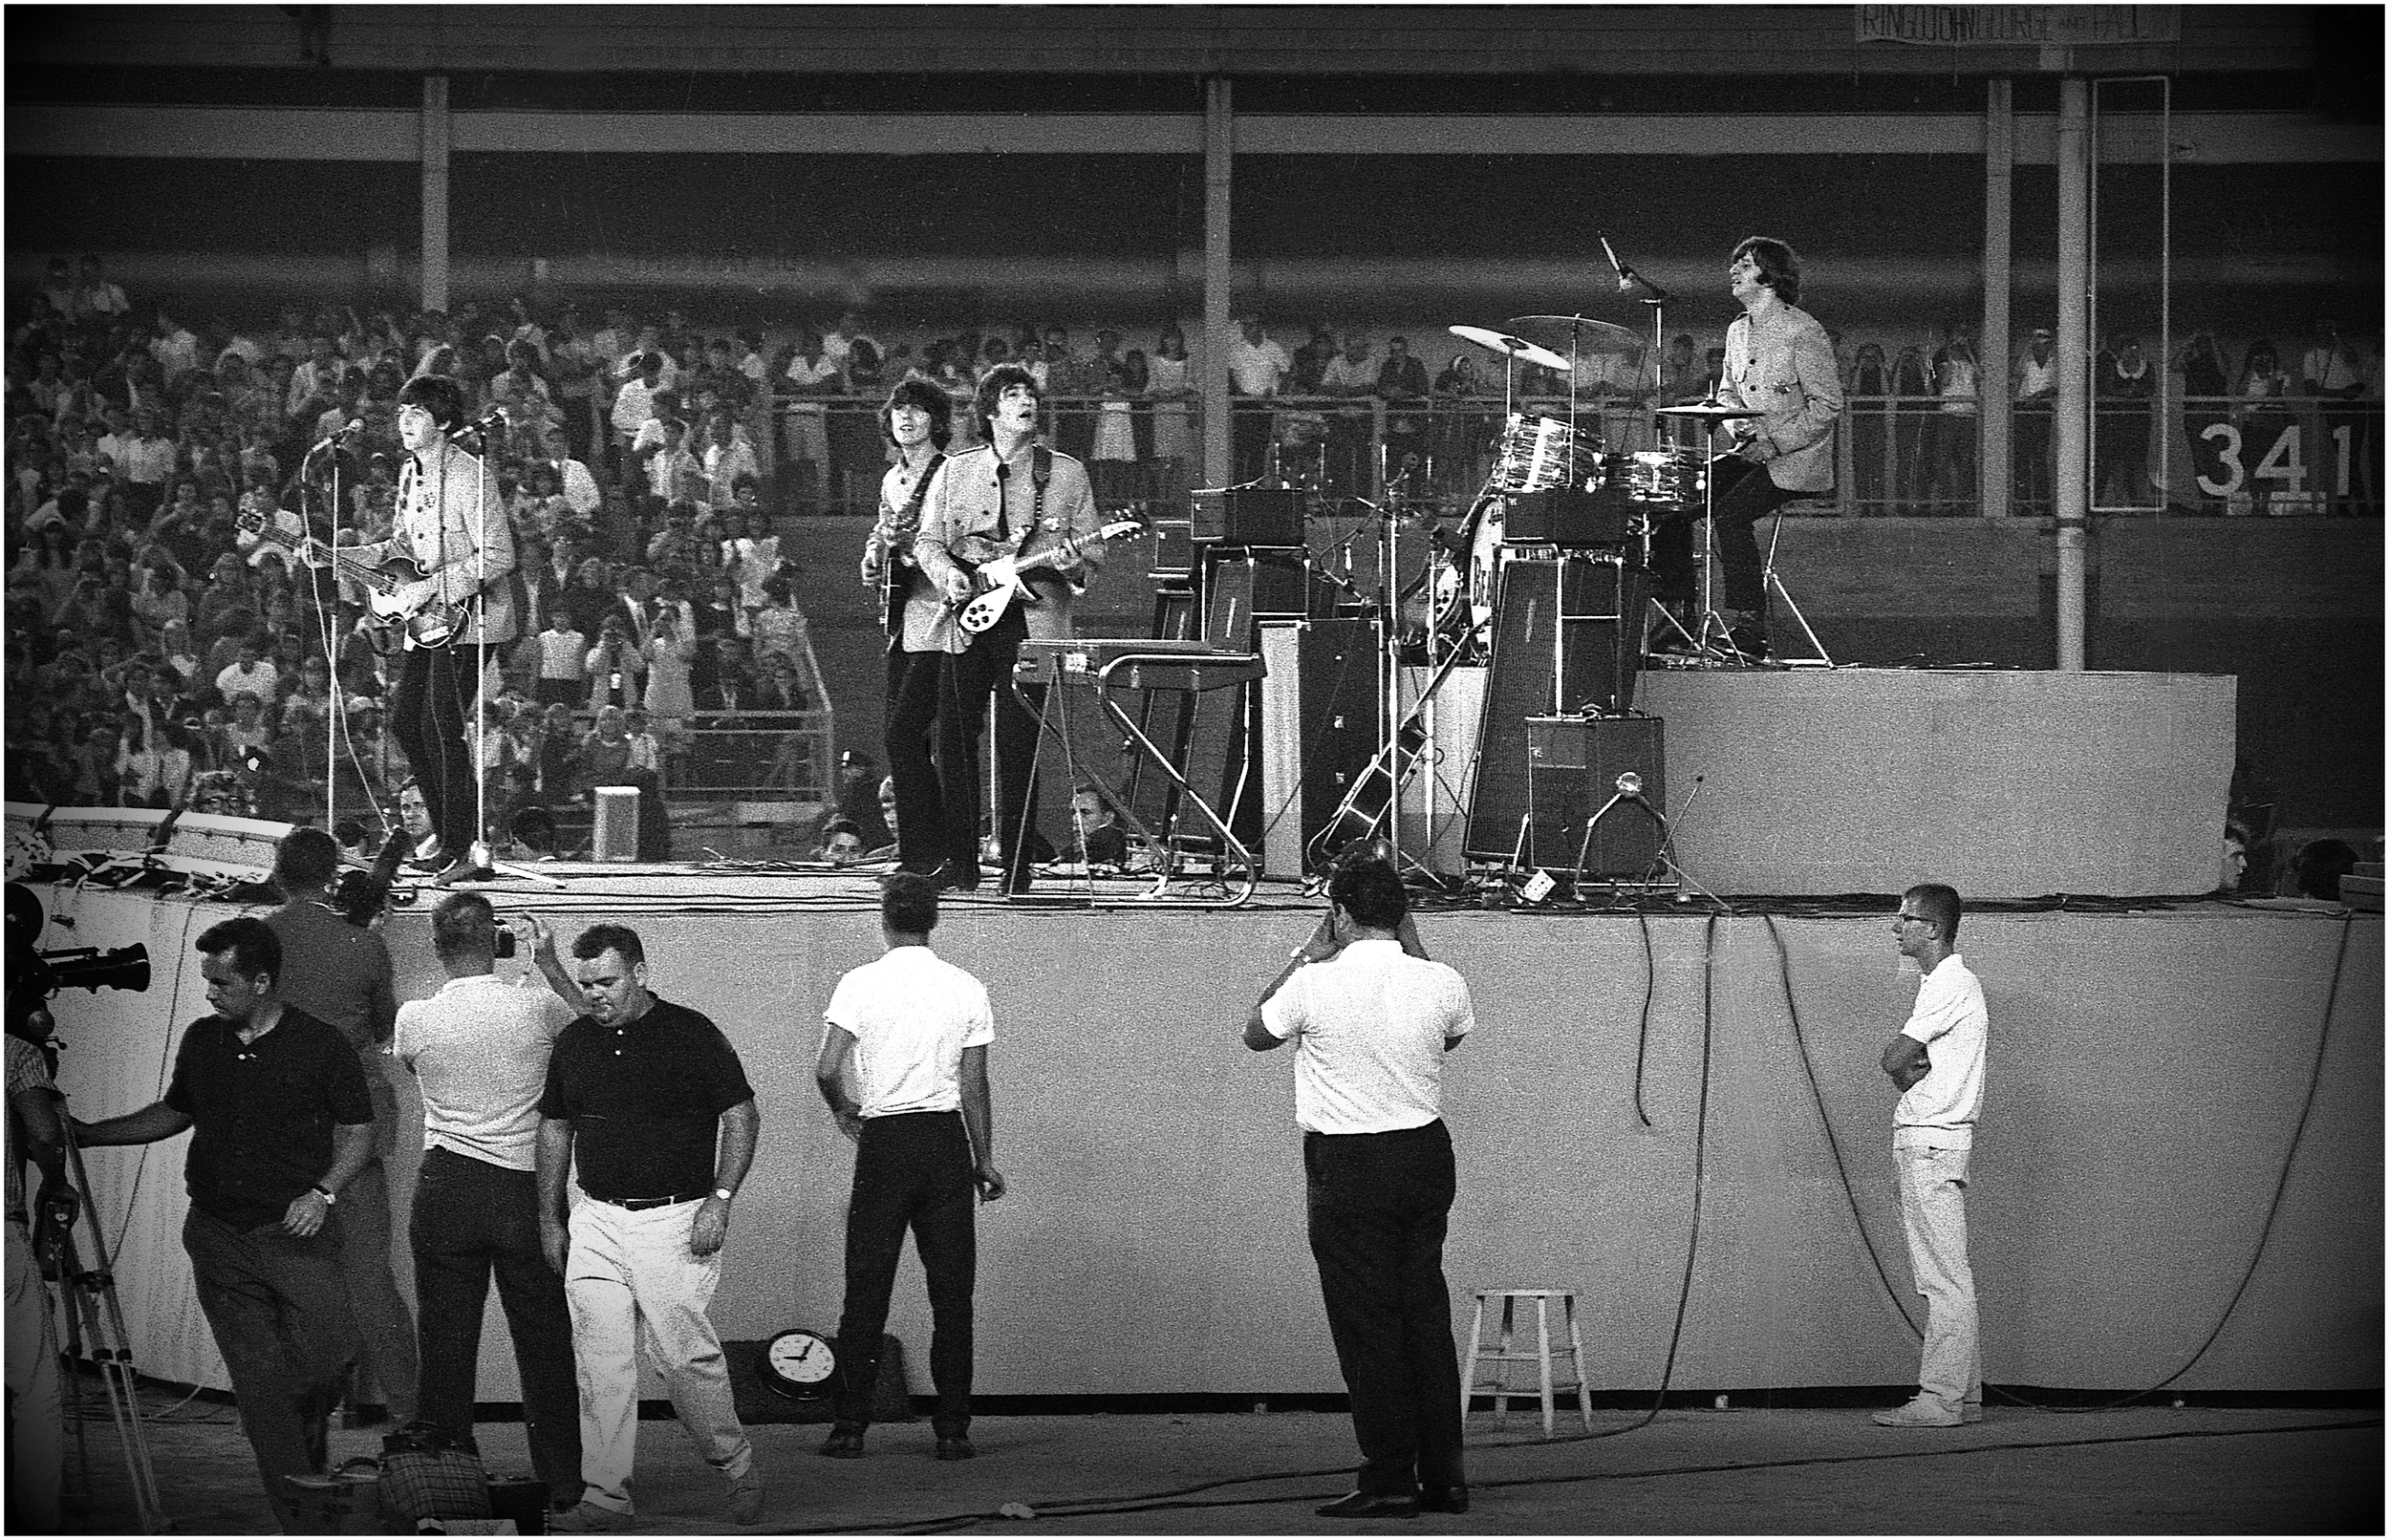 """The Beatles at Shea"" - 50 years ago!"